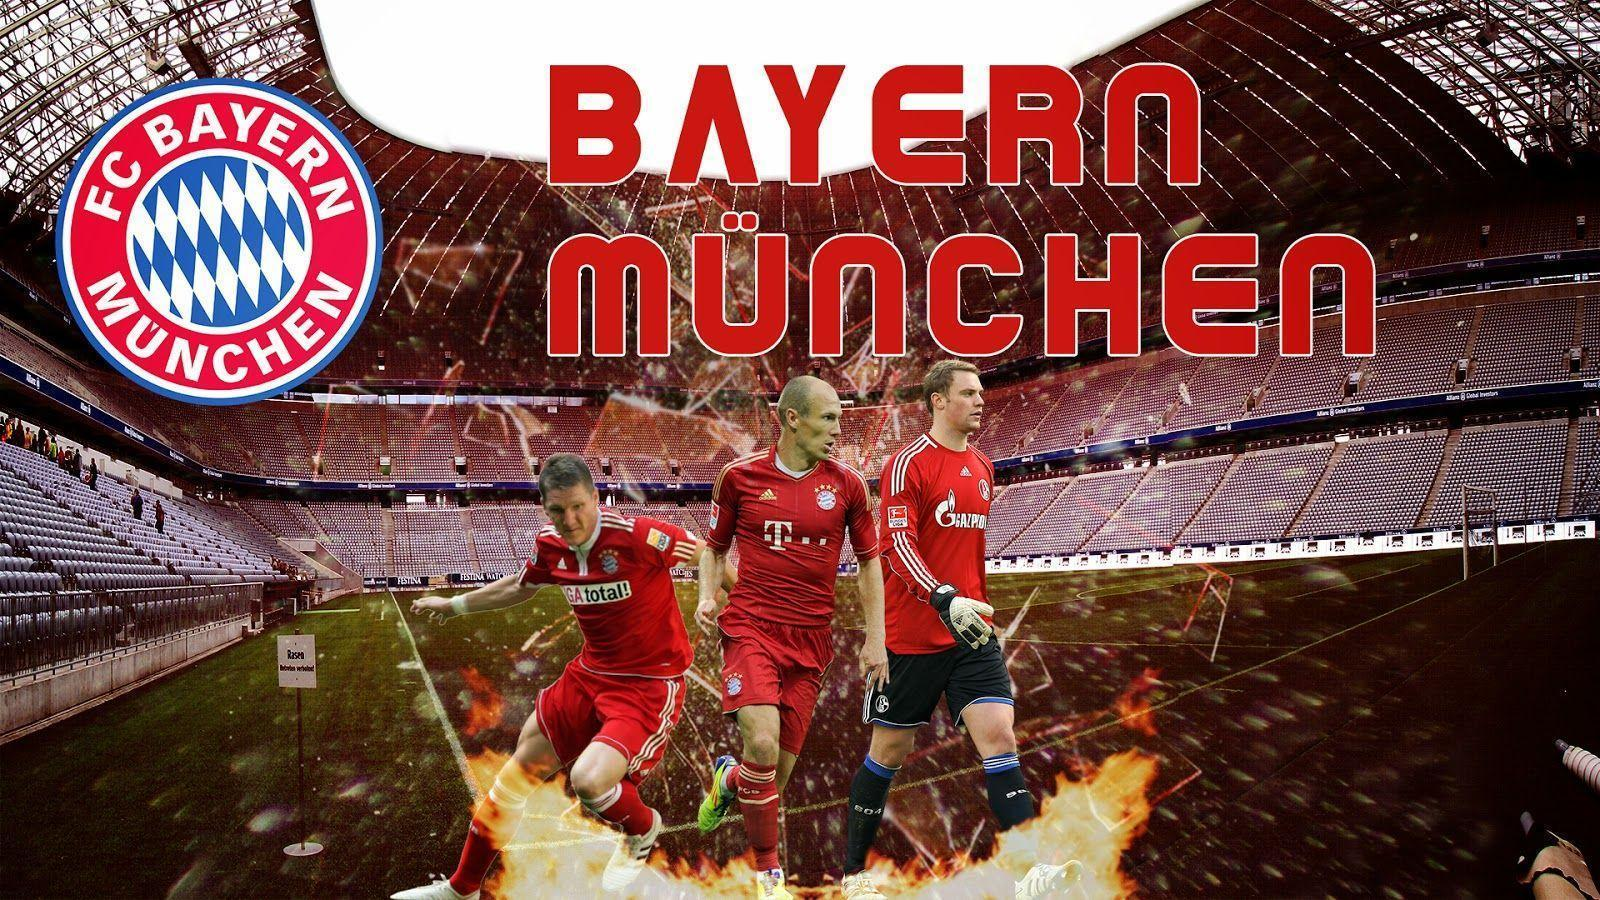 Bayern Munchen Football Club Wallpaper | Football Wallpaper HD